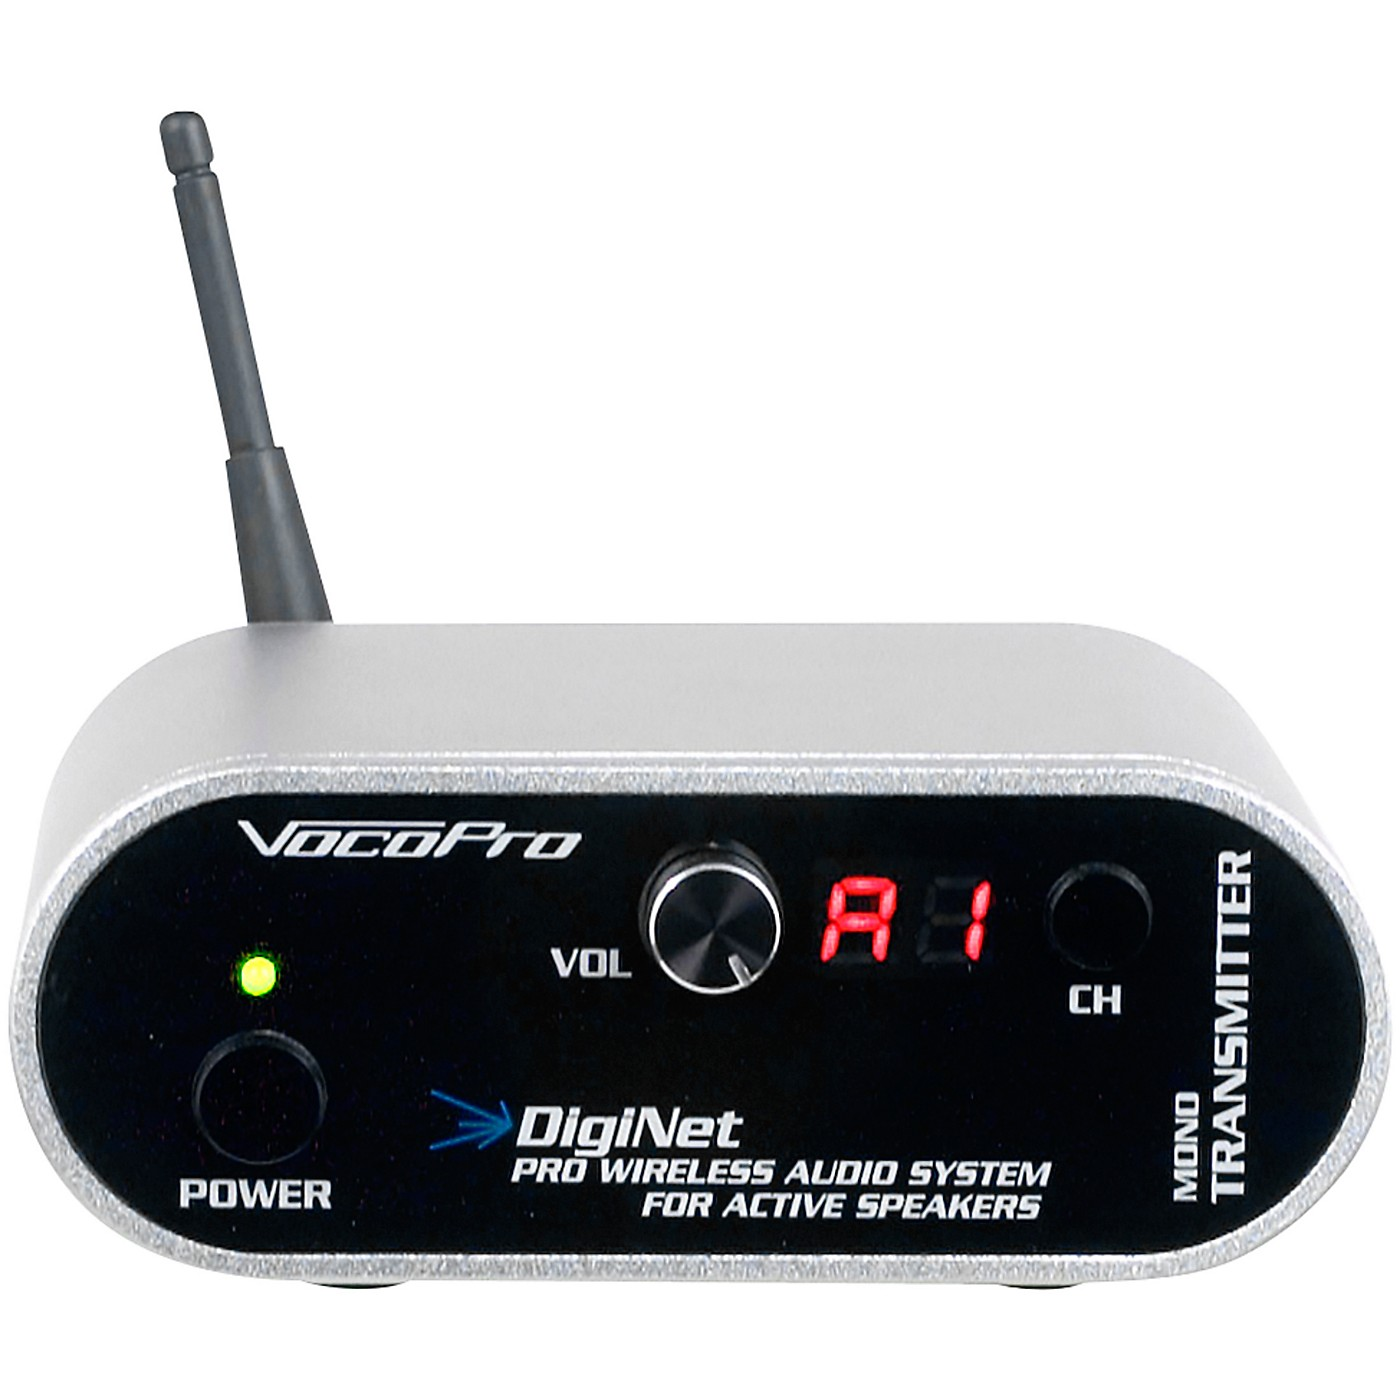 Vocopro DigiNet-MT Mono Transmitter/Range extender for DigiNet Professional Wireless Audio System thumbnail